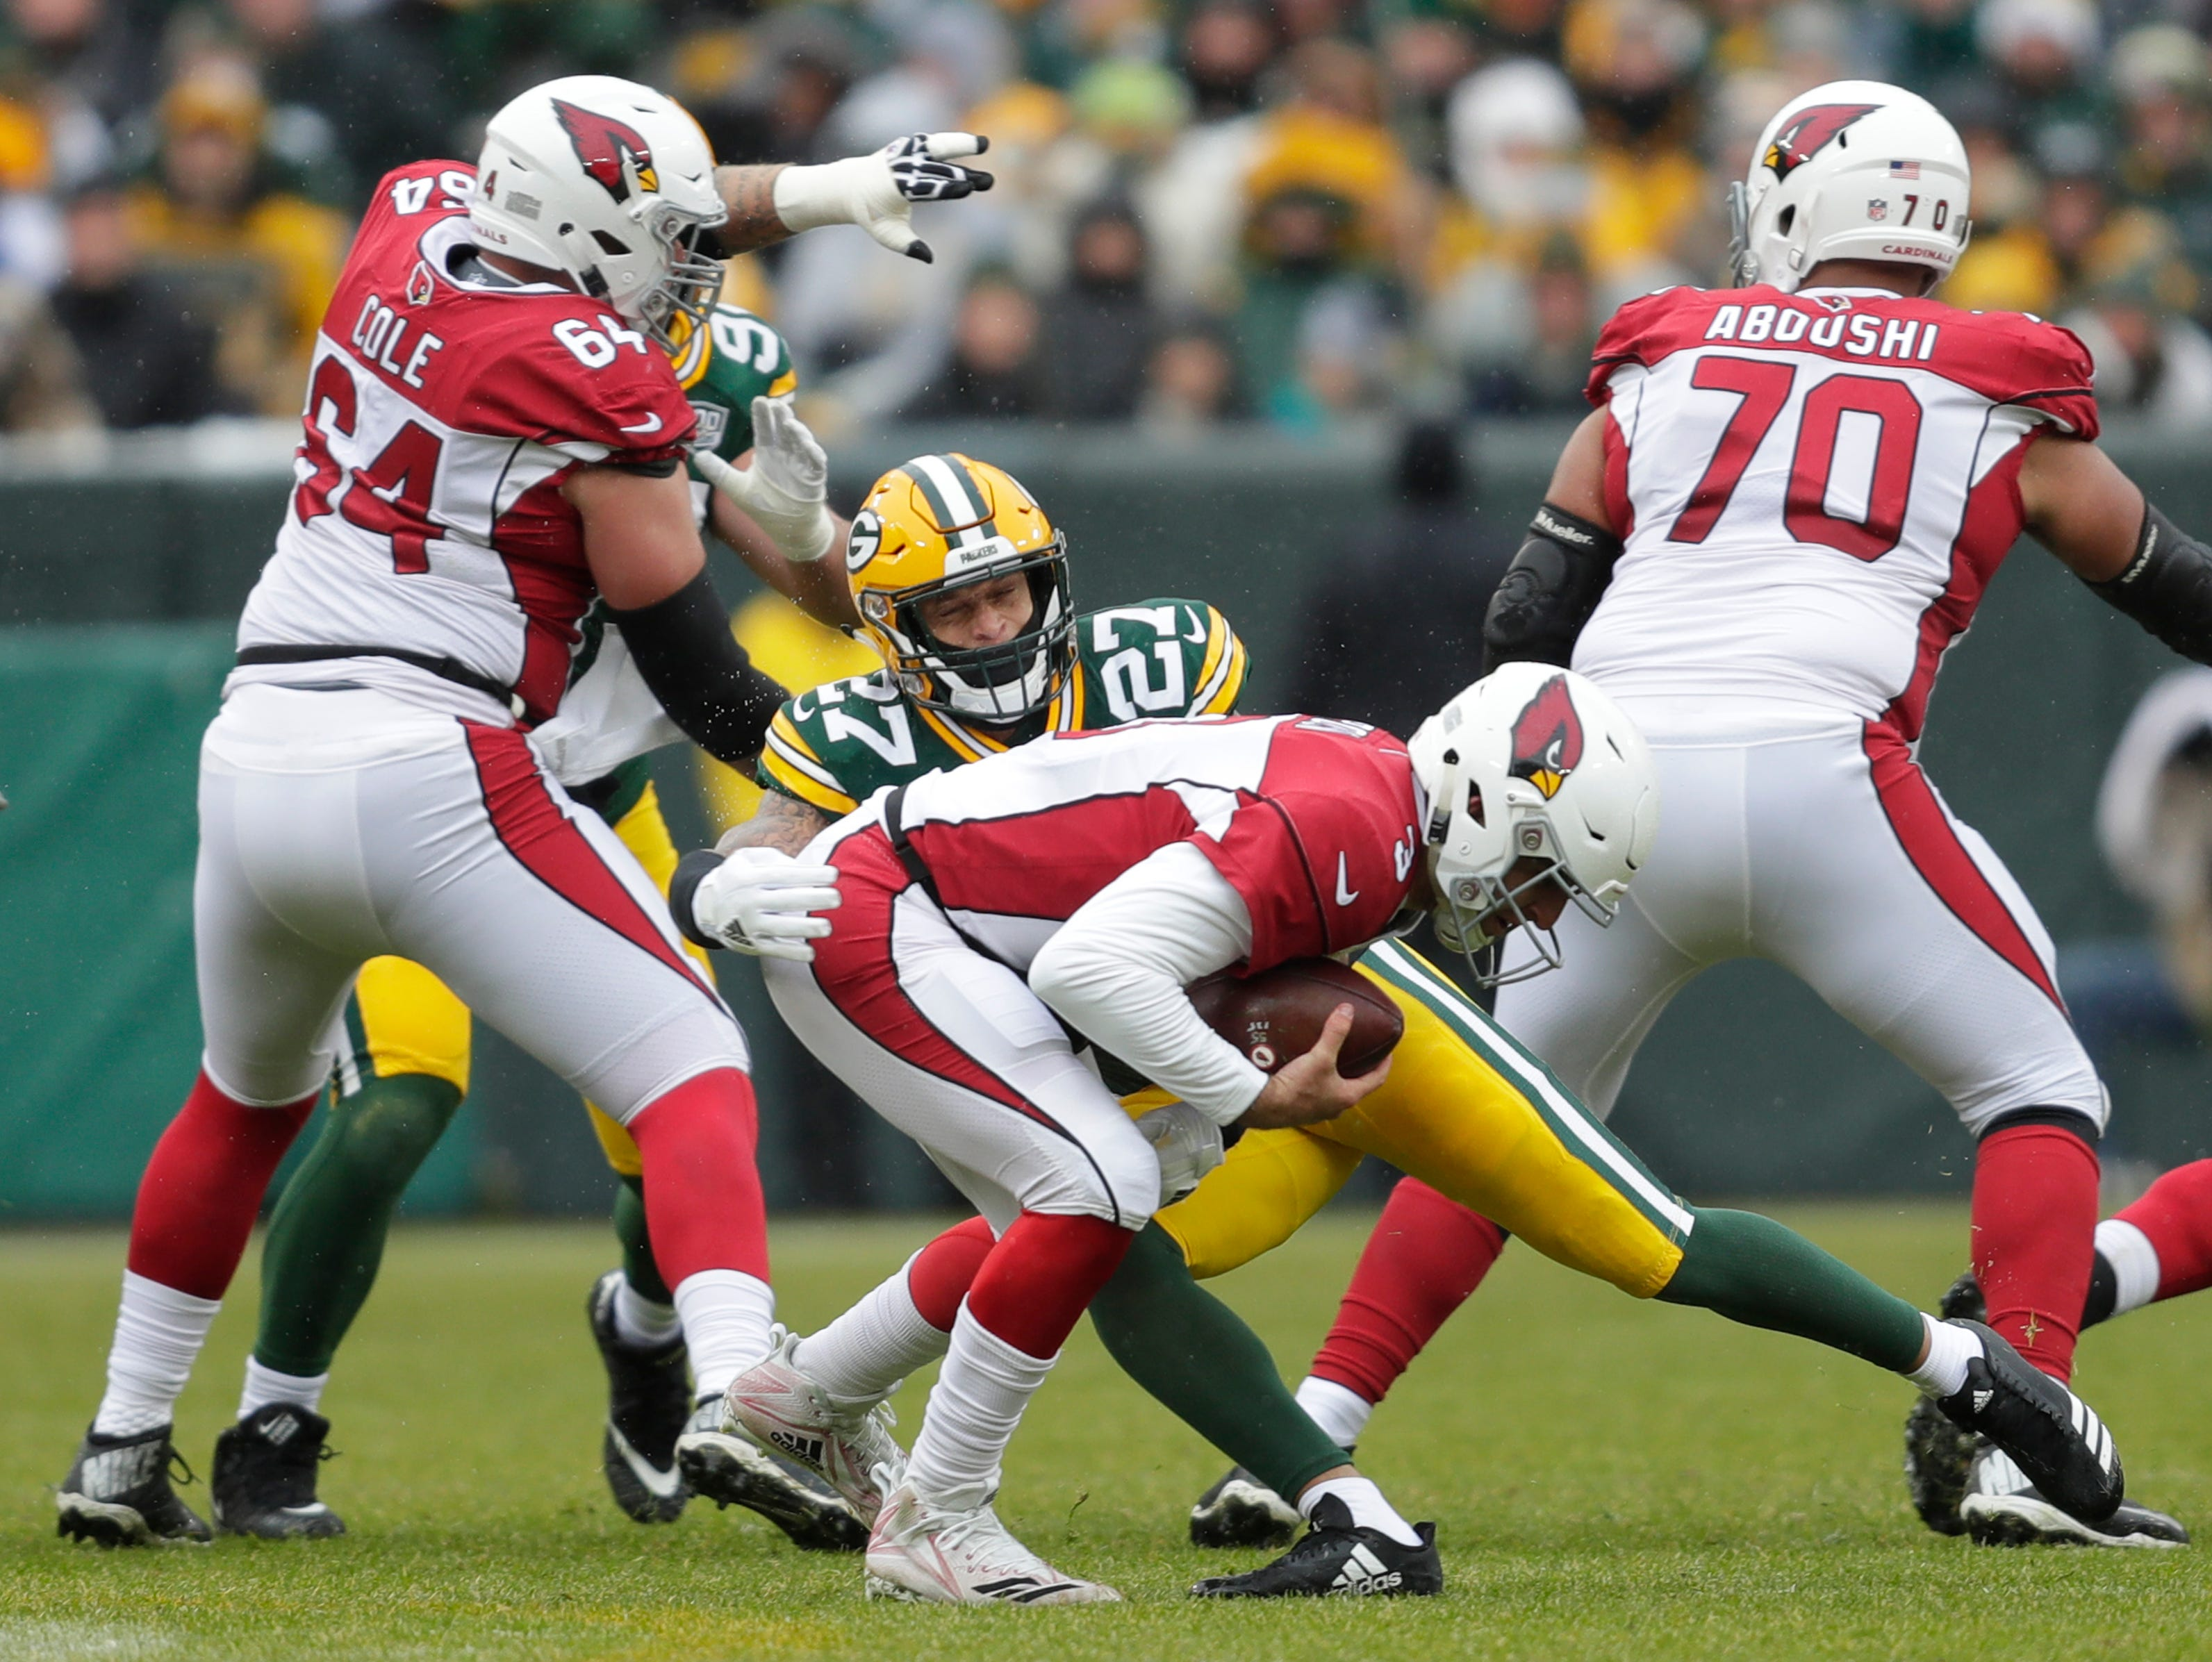 Green Bay Packers defensive back Josh Jones (27) sacks Arizona Cardinals quarterback Josh Rosen (3) in the first quarter Sunday, December 2, 2018, at Lambeau Field in Green Bay, Wis. 